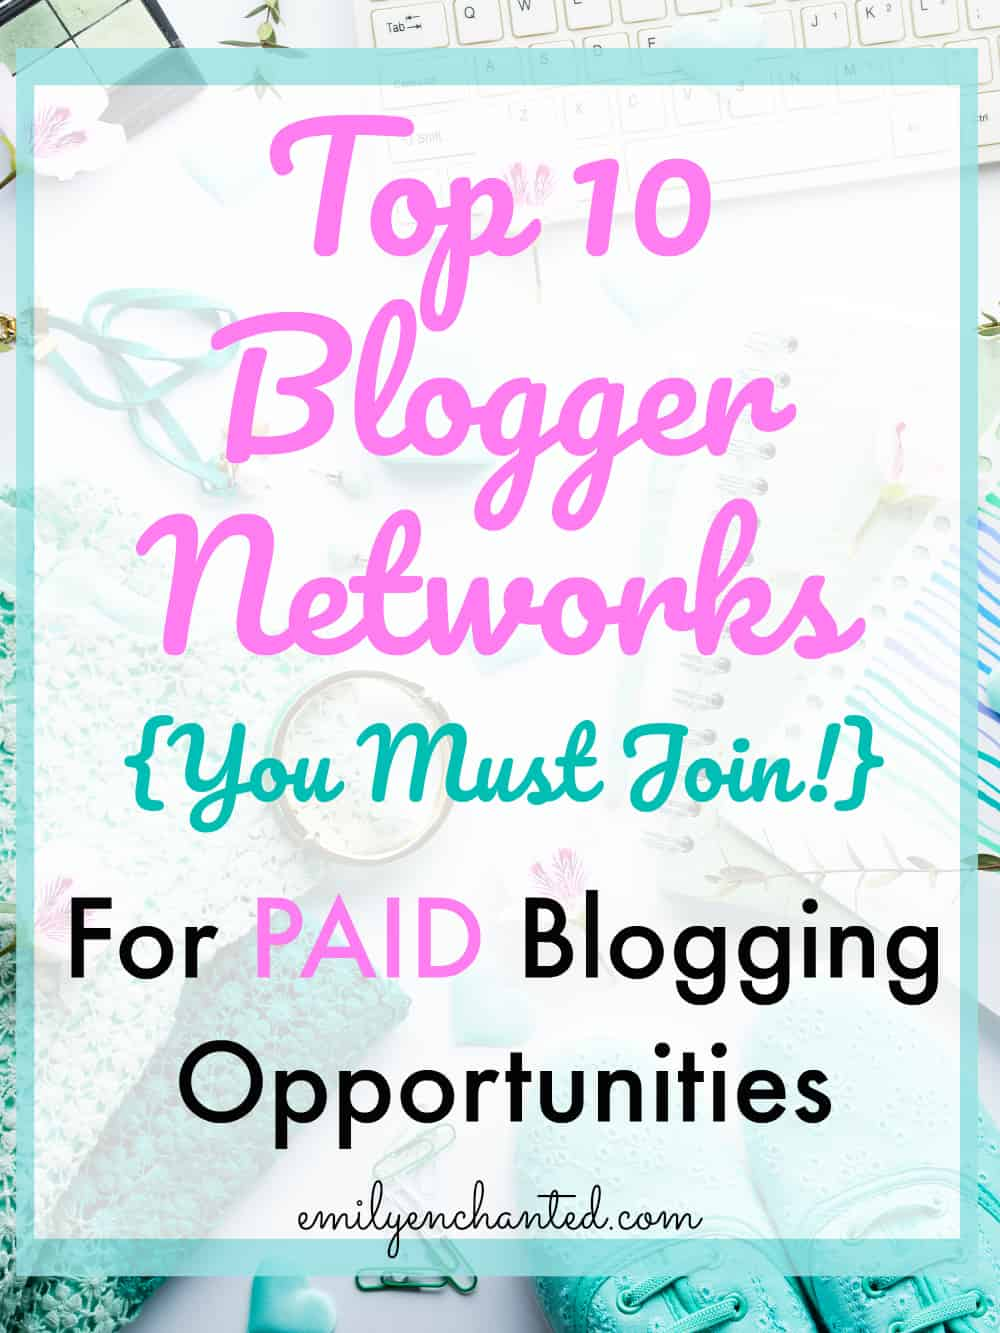 Top 10 Blogger Networks for Paid Blogging Opportunities